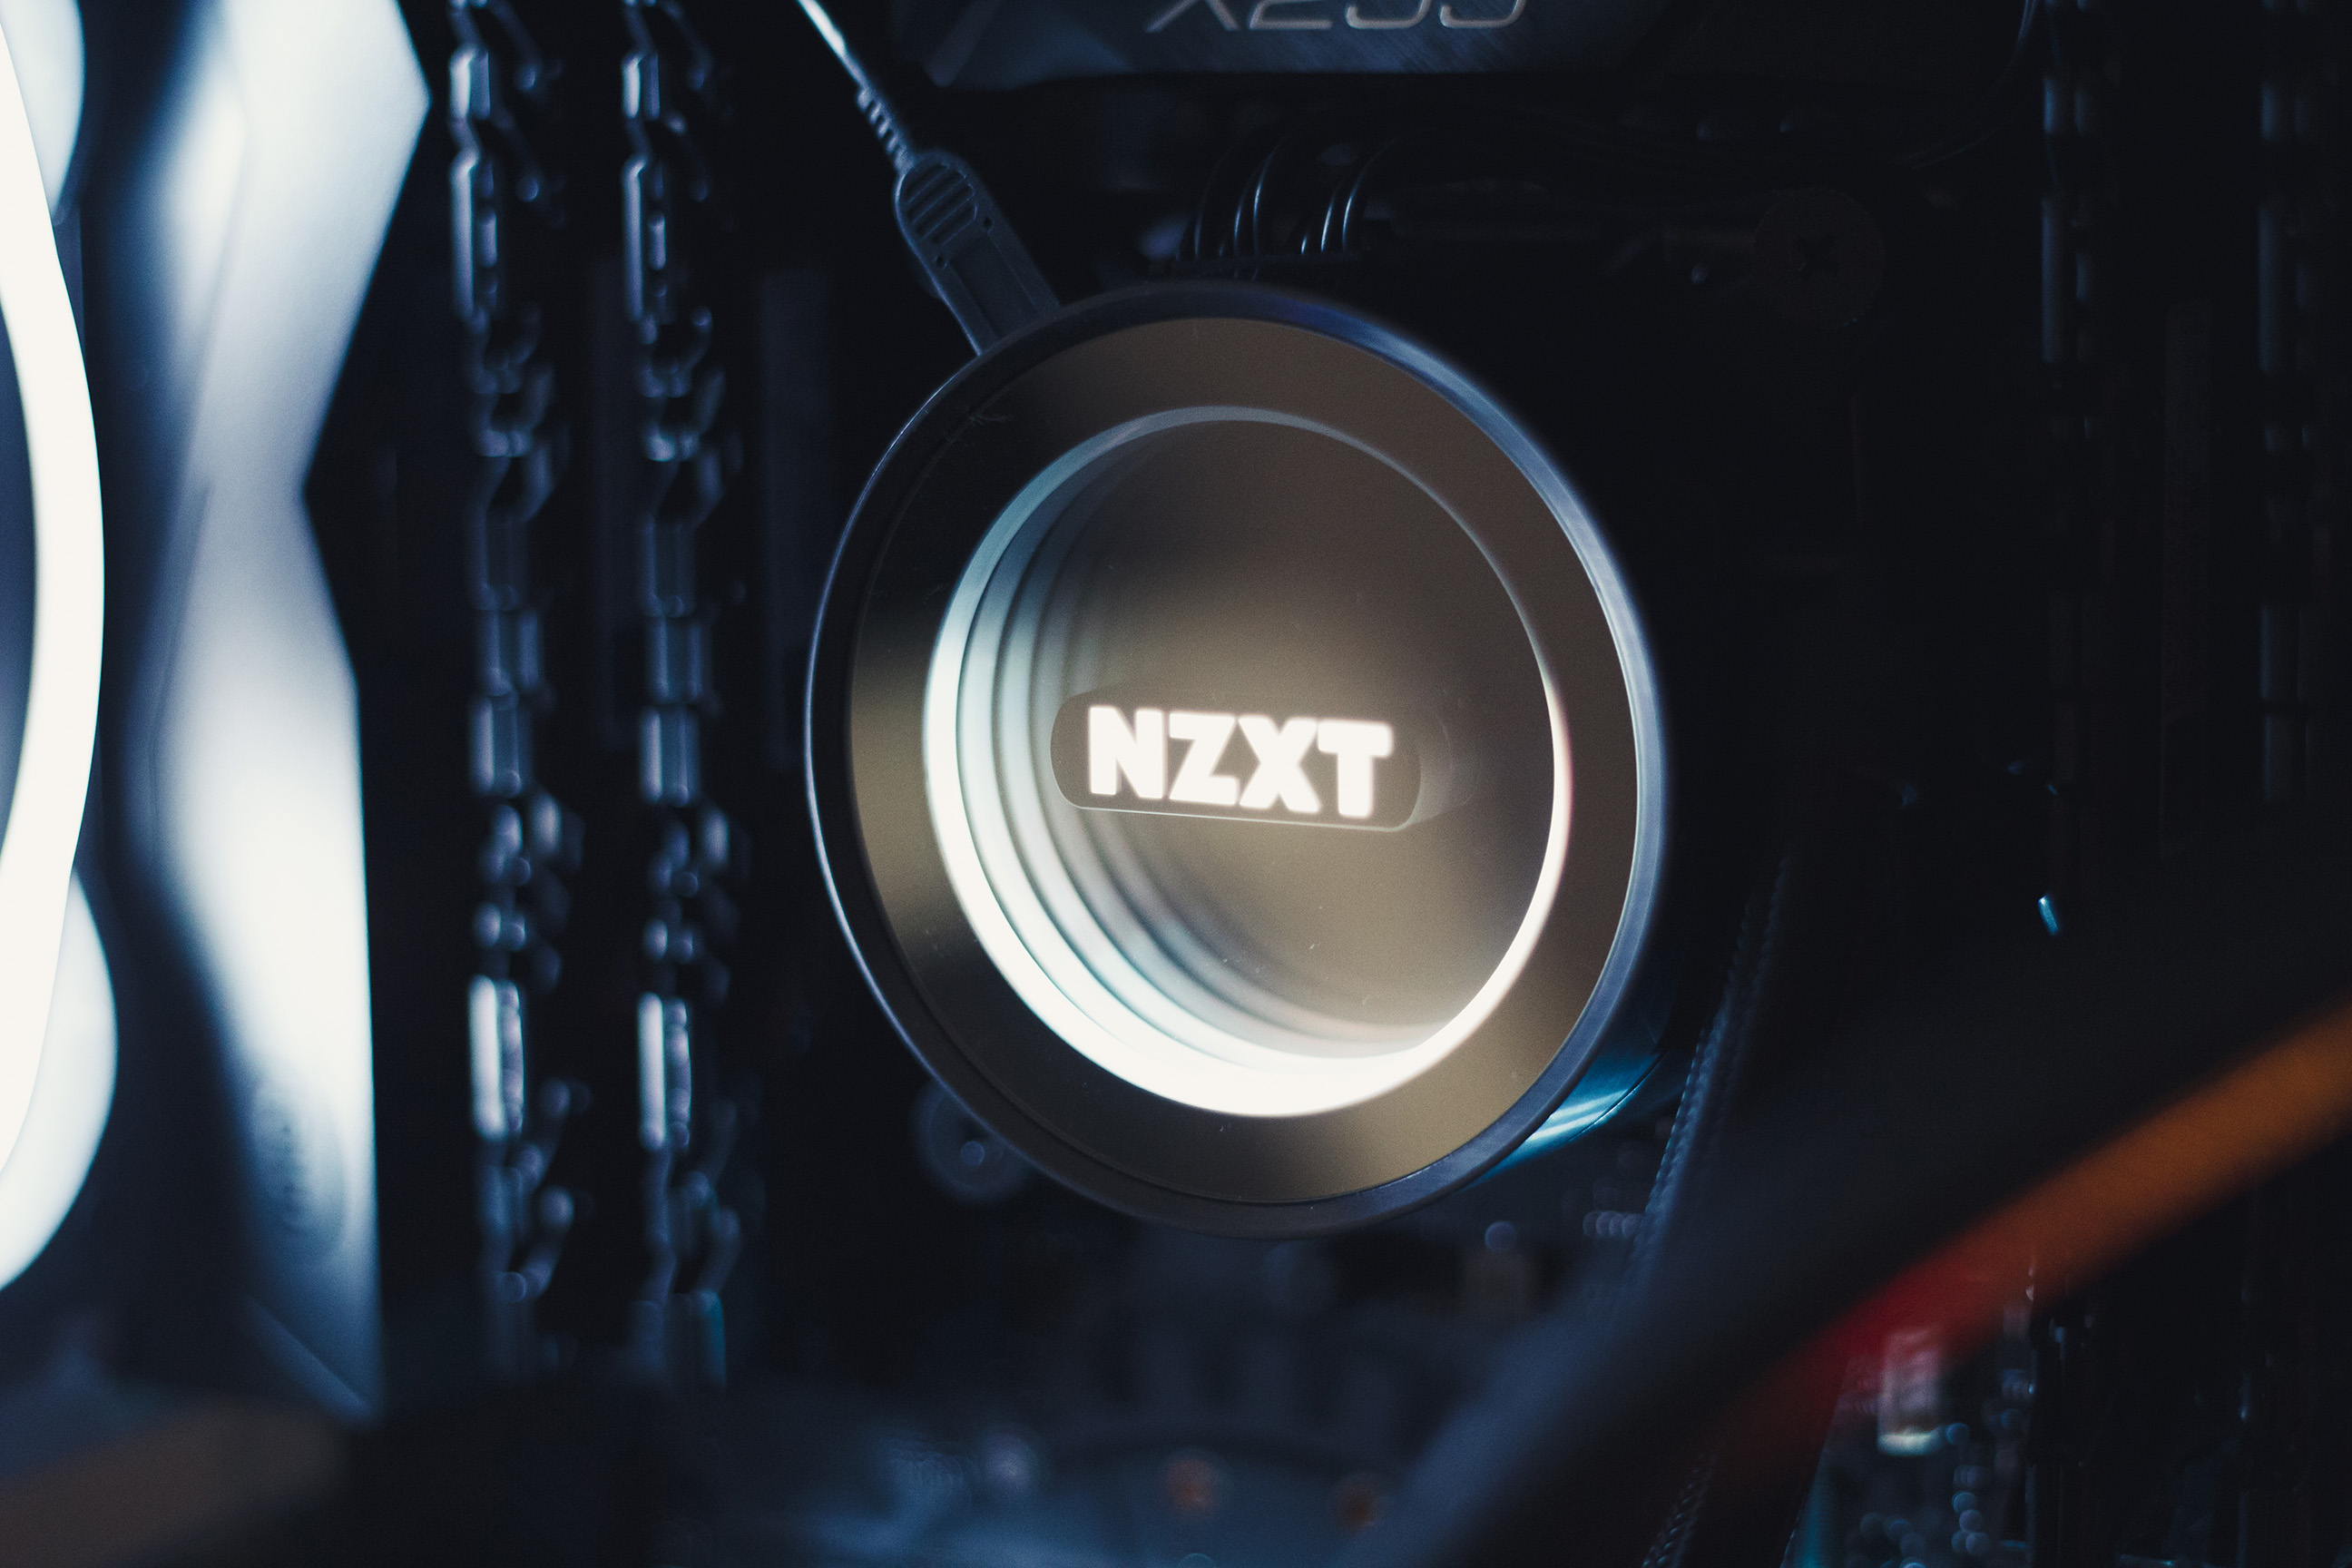 The NZXT Kraken X62s Infinity Mirror Design Is One Of Most Iconic Upgrades In AIO Aesthetics A Very Long Time